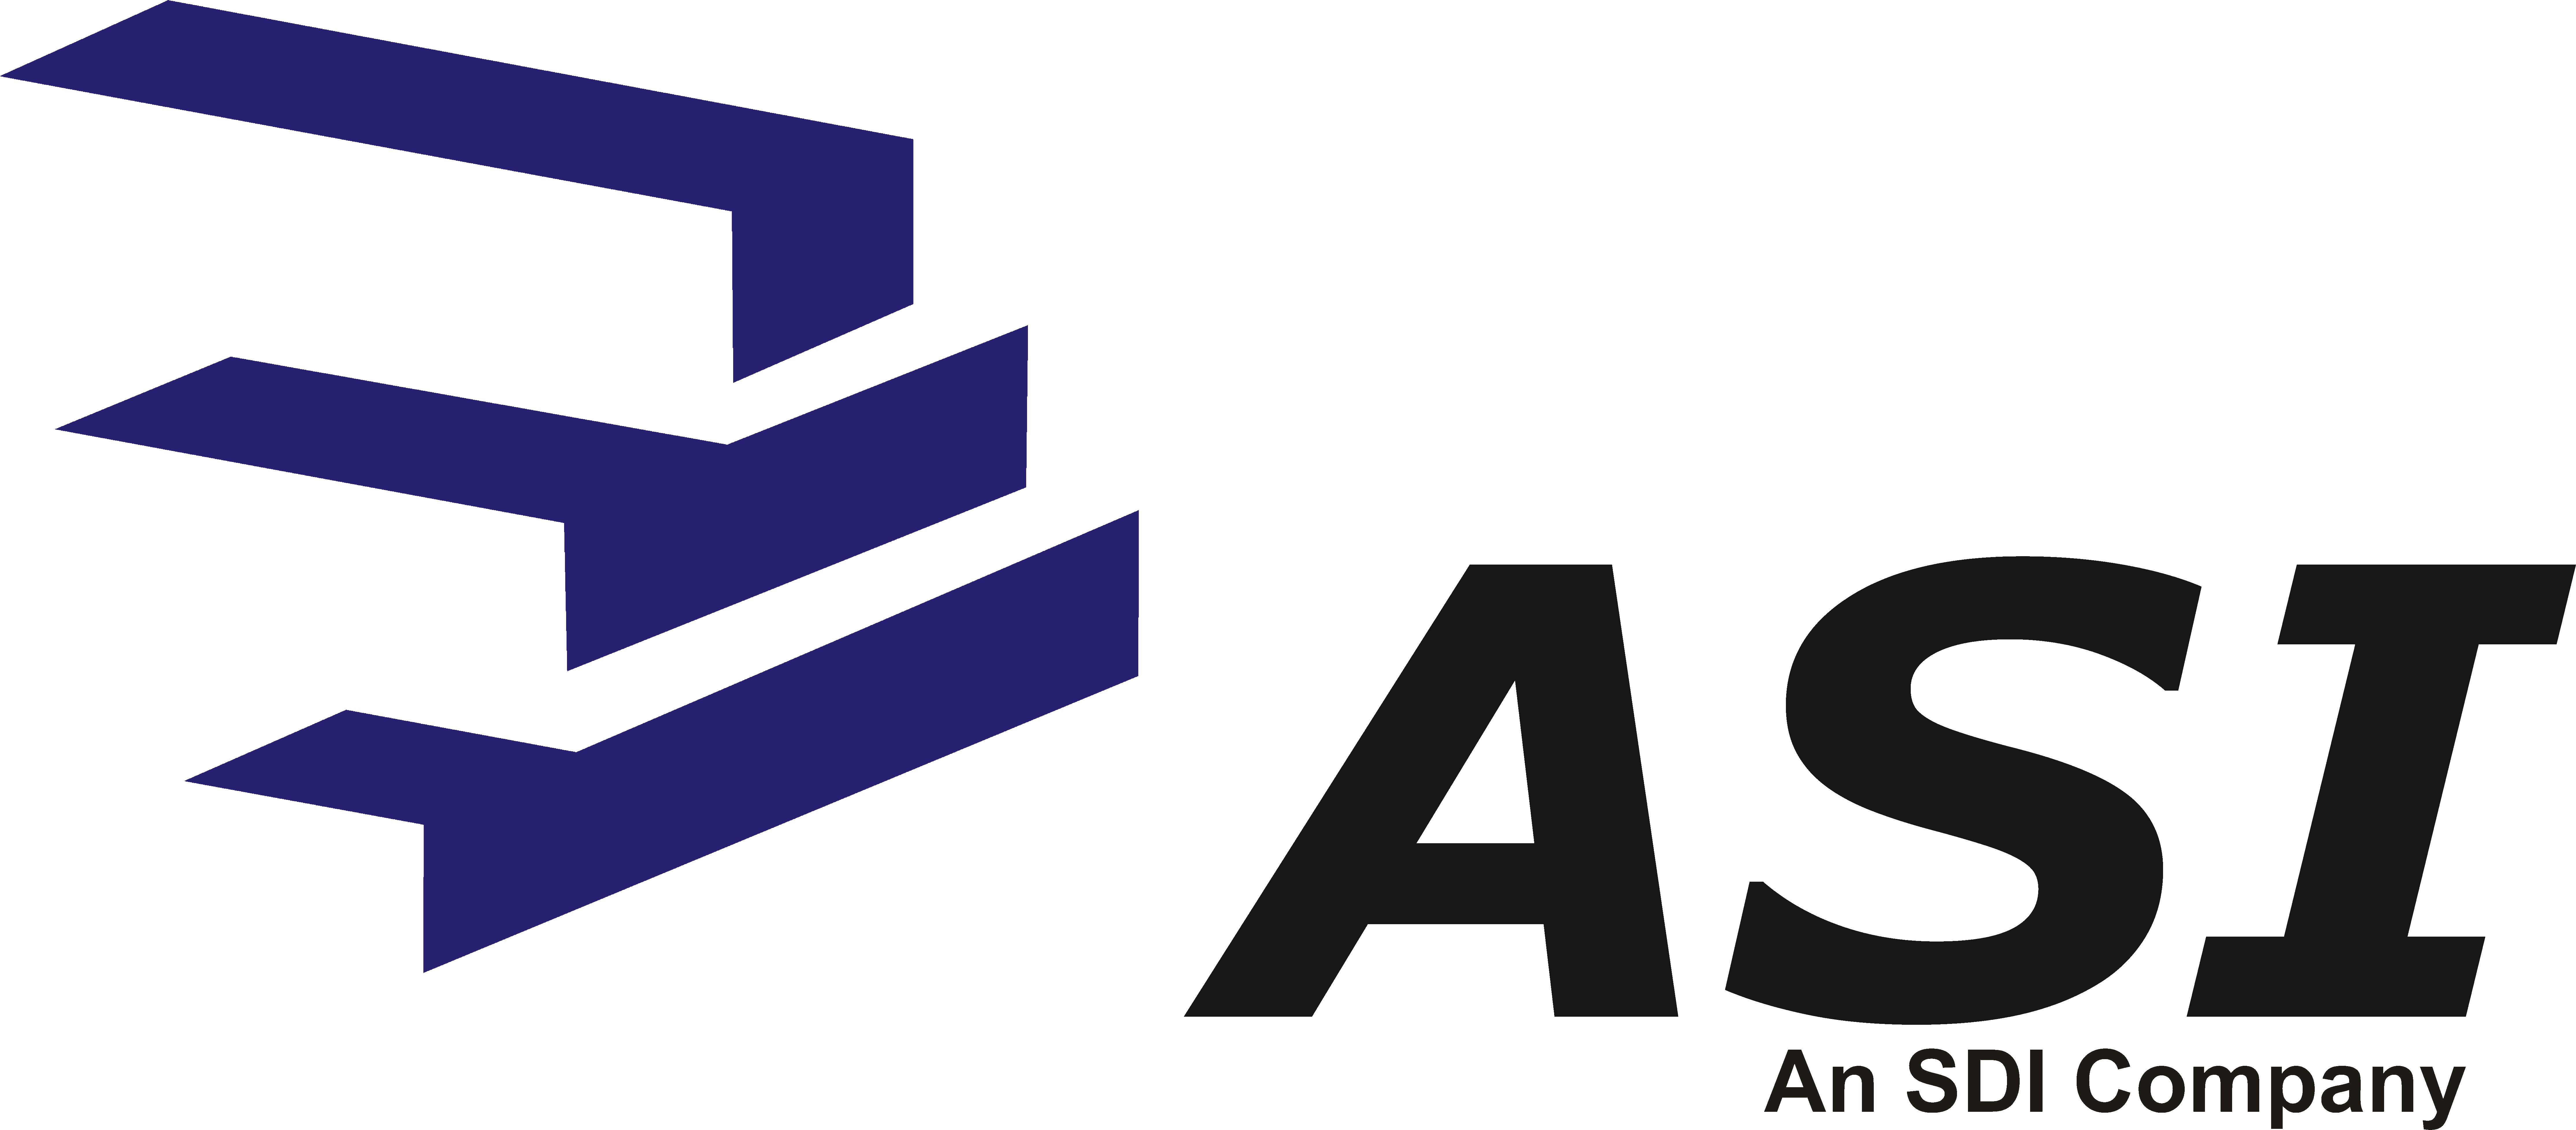 ASI Construction LLC